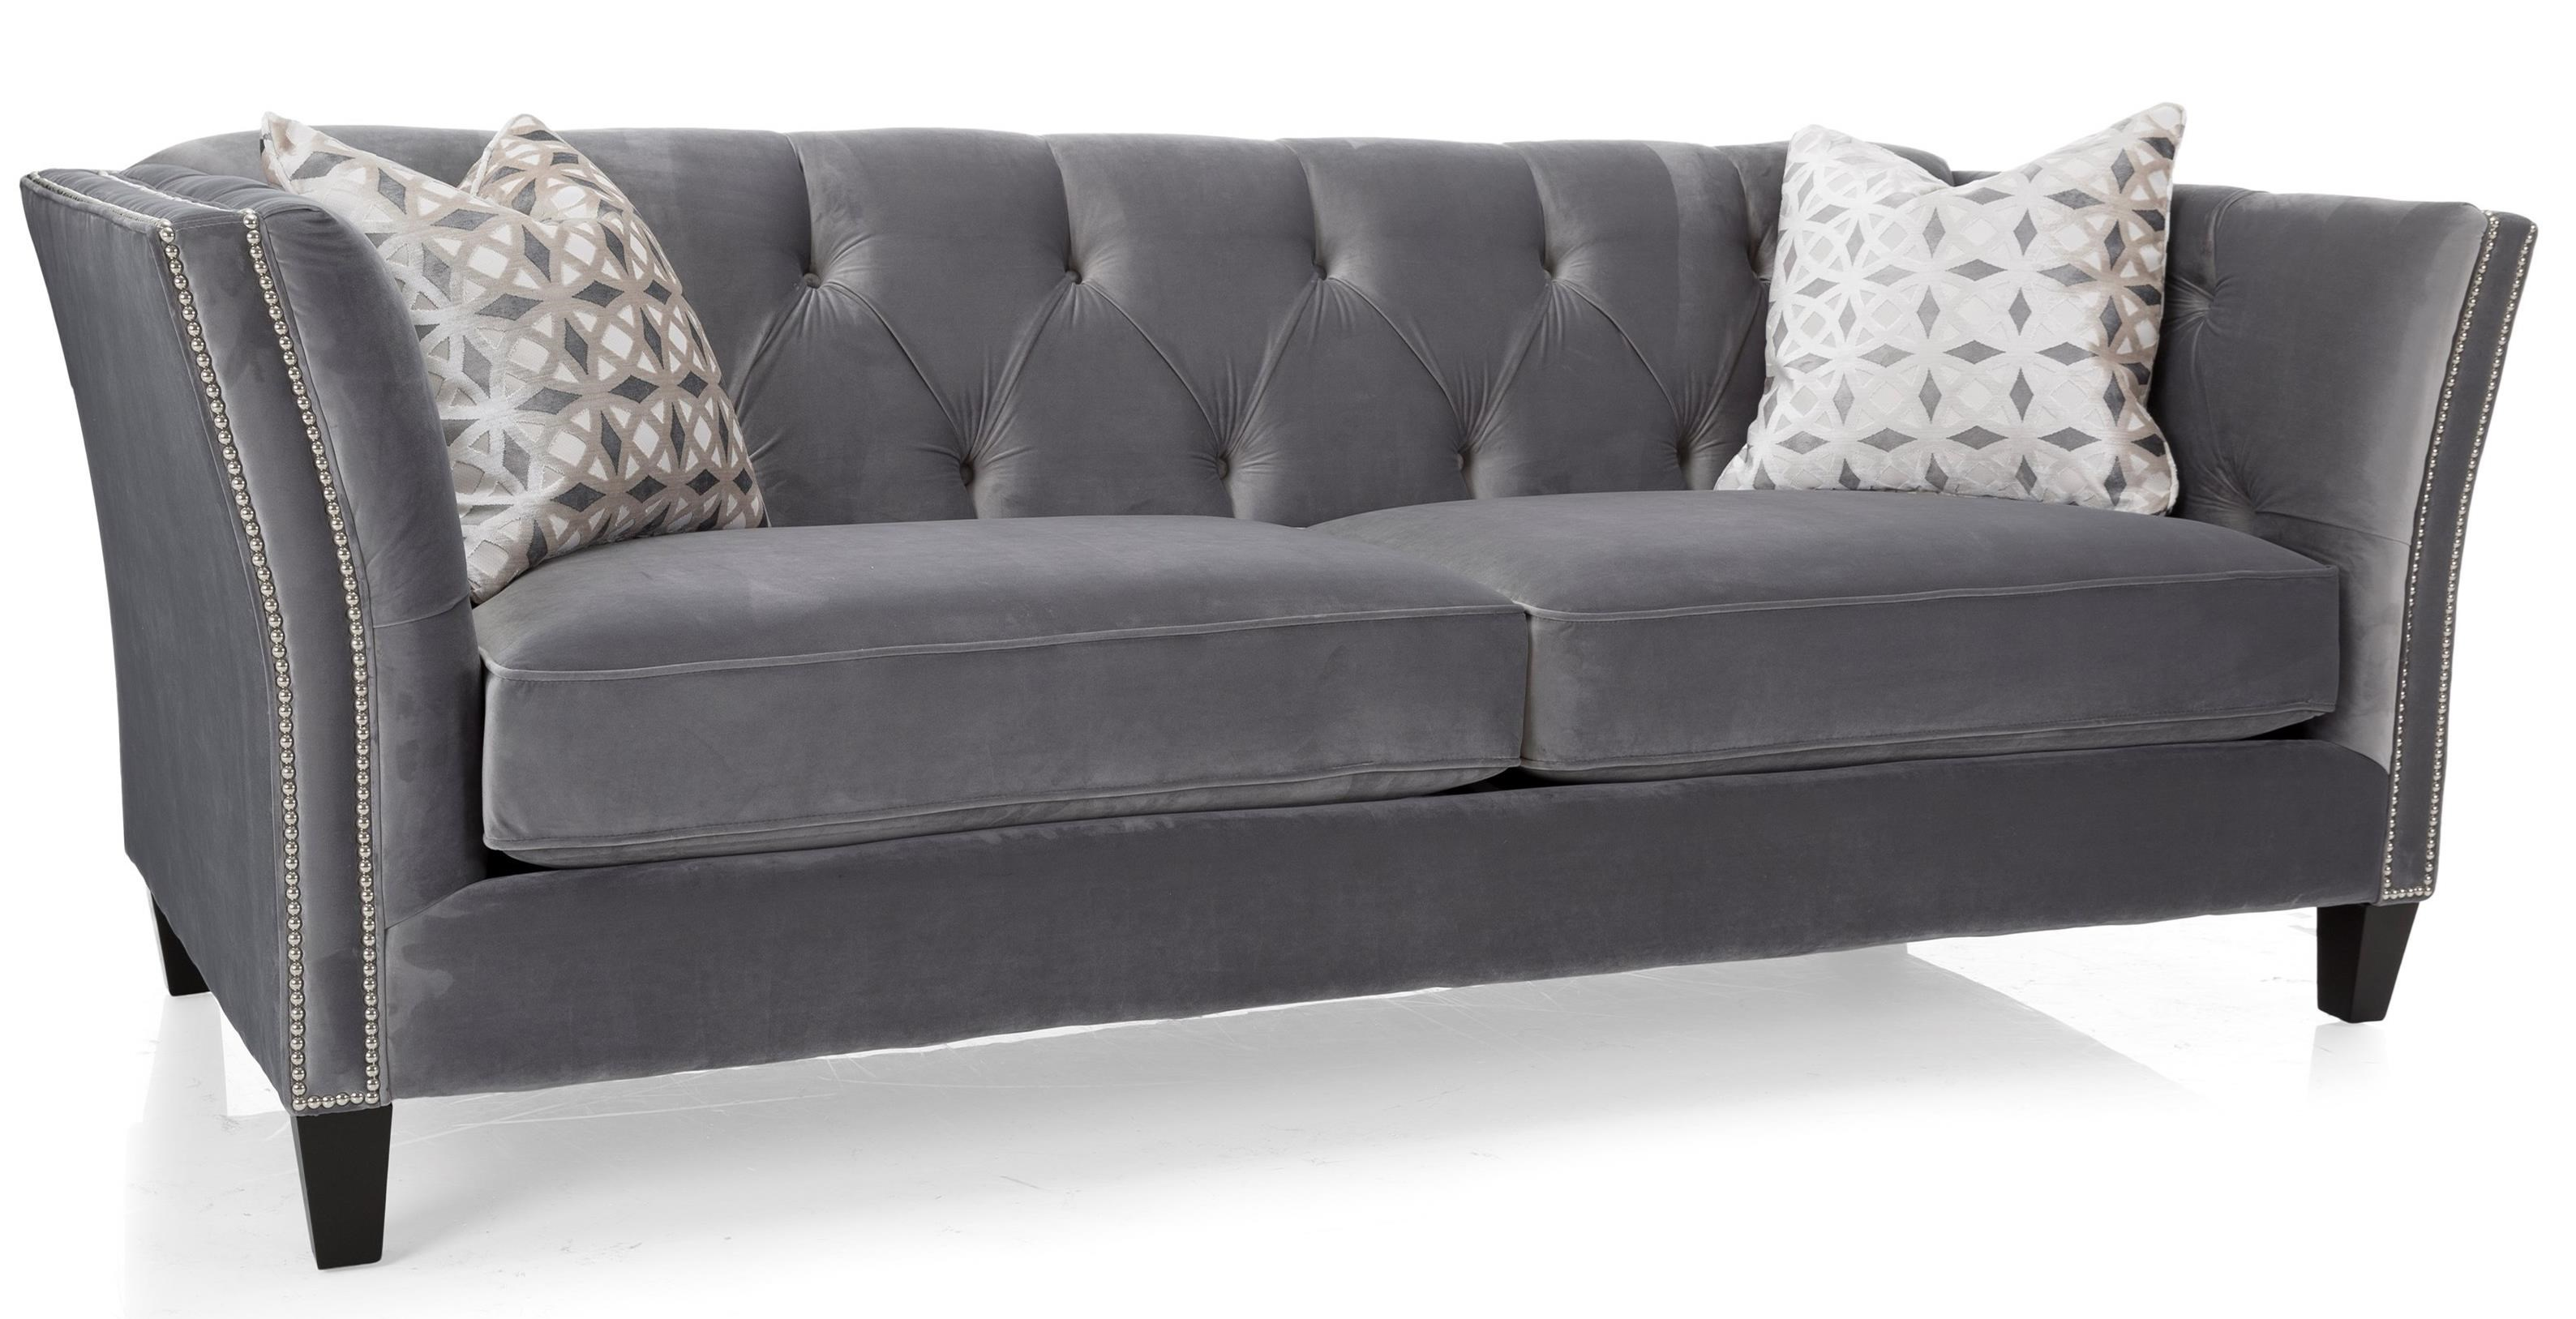 Decor Rest 2555 Traditional Sofa With Flared Arms Stoney